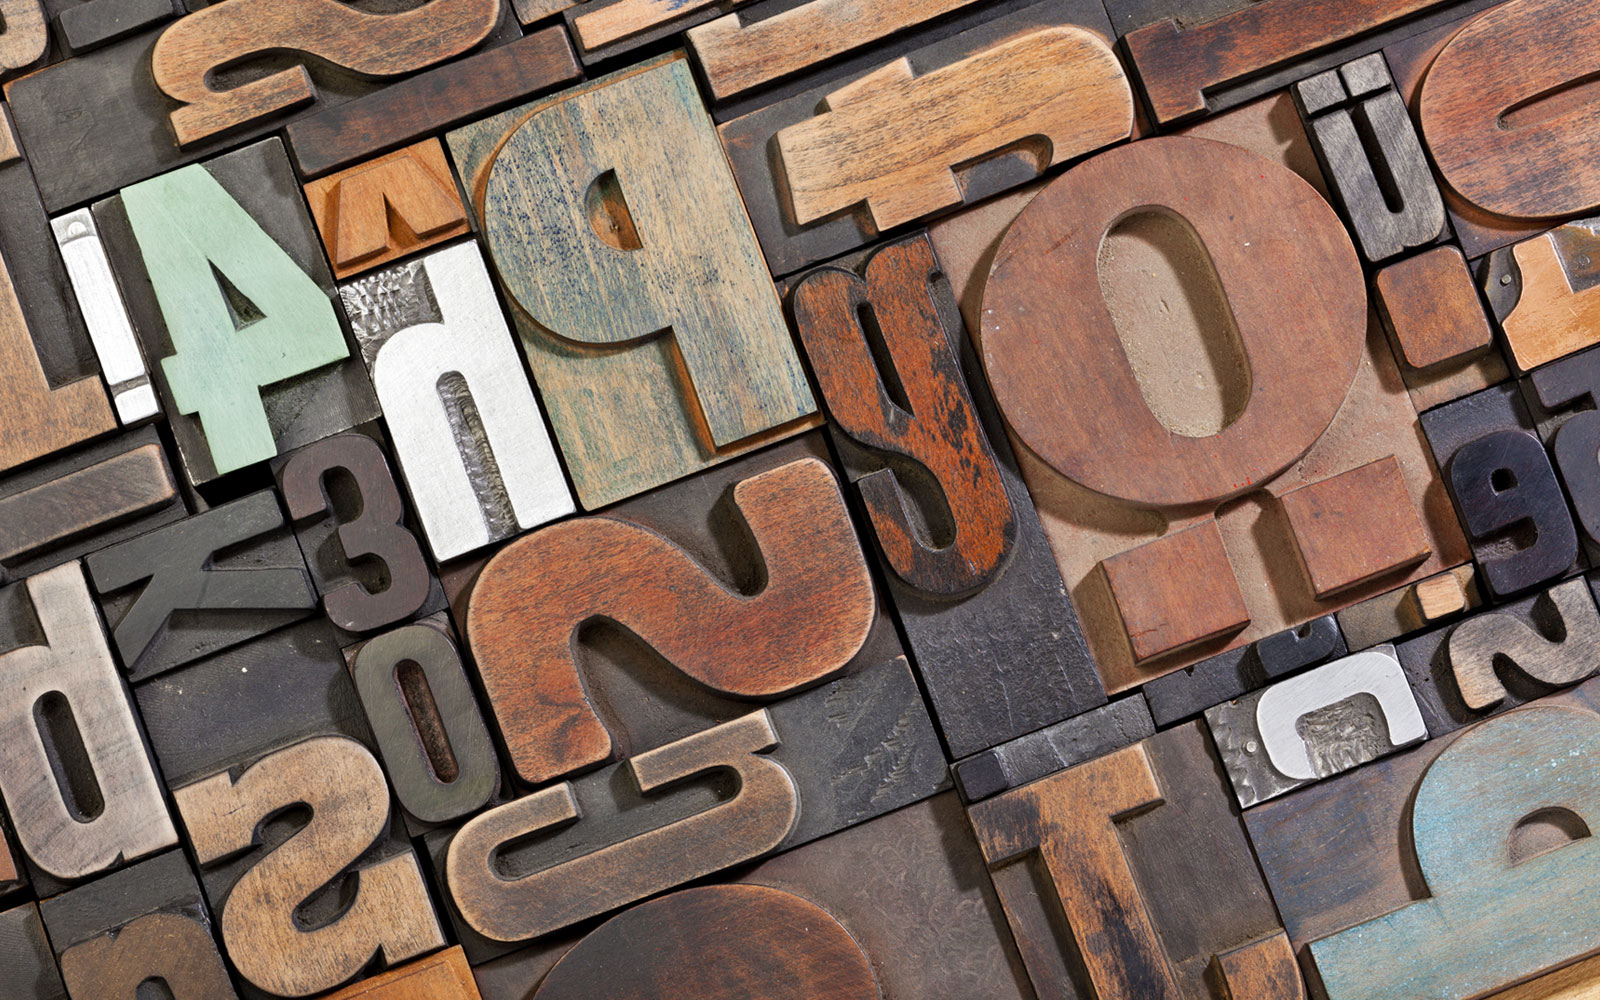 Picking the best fonts for your website